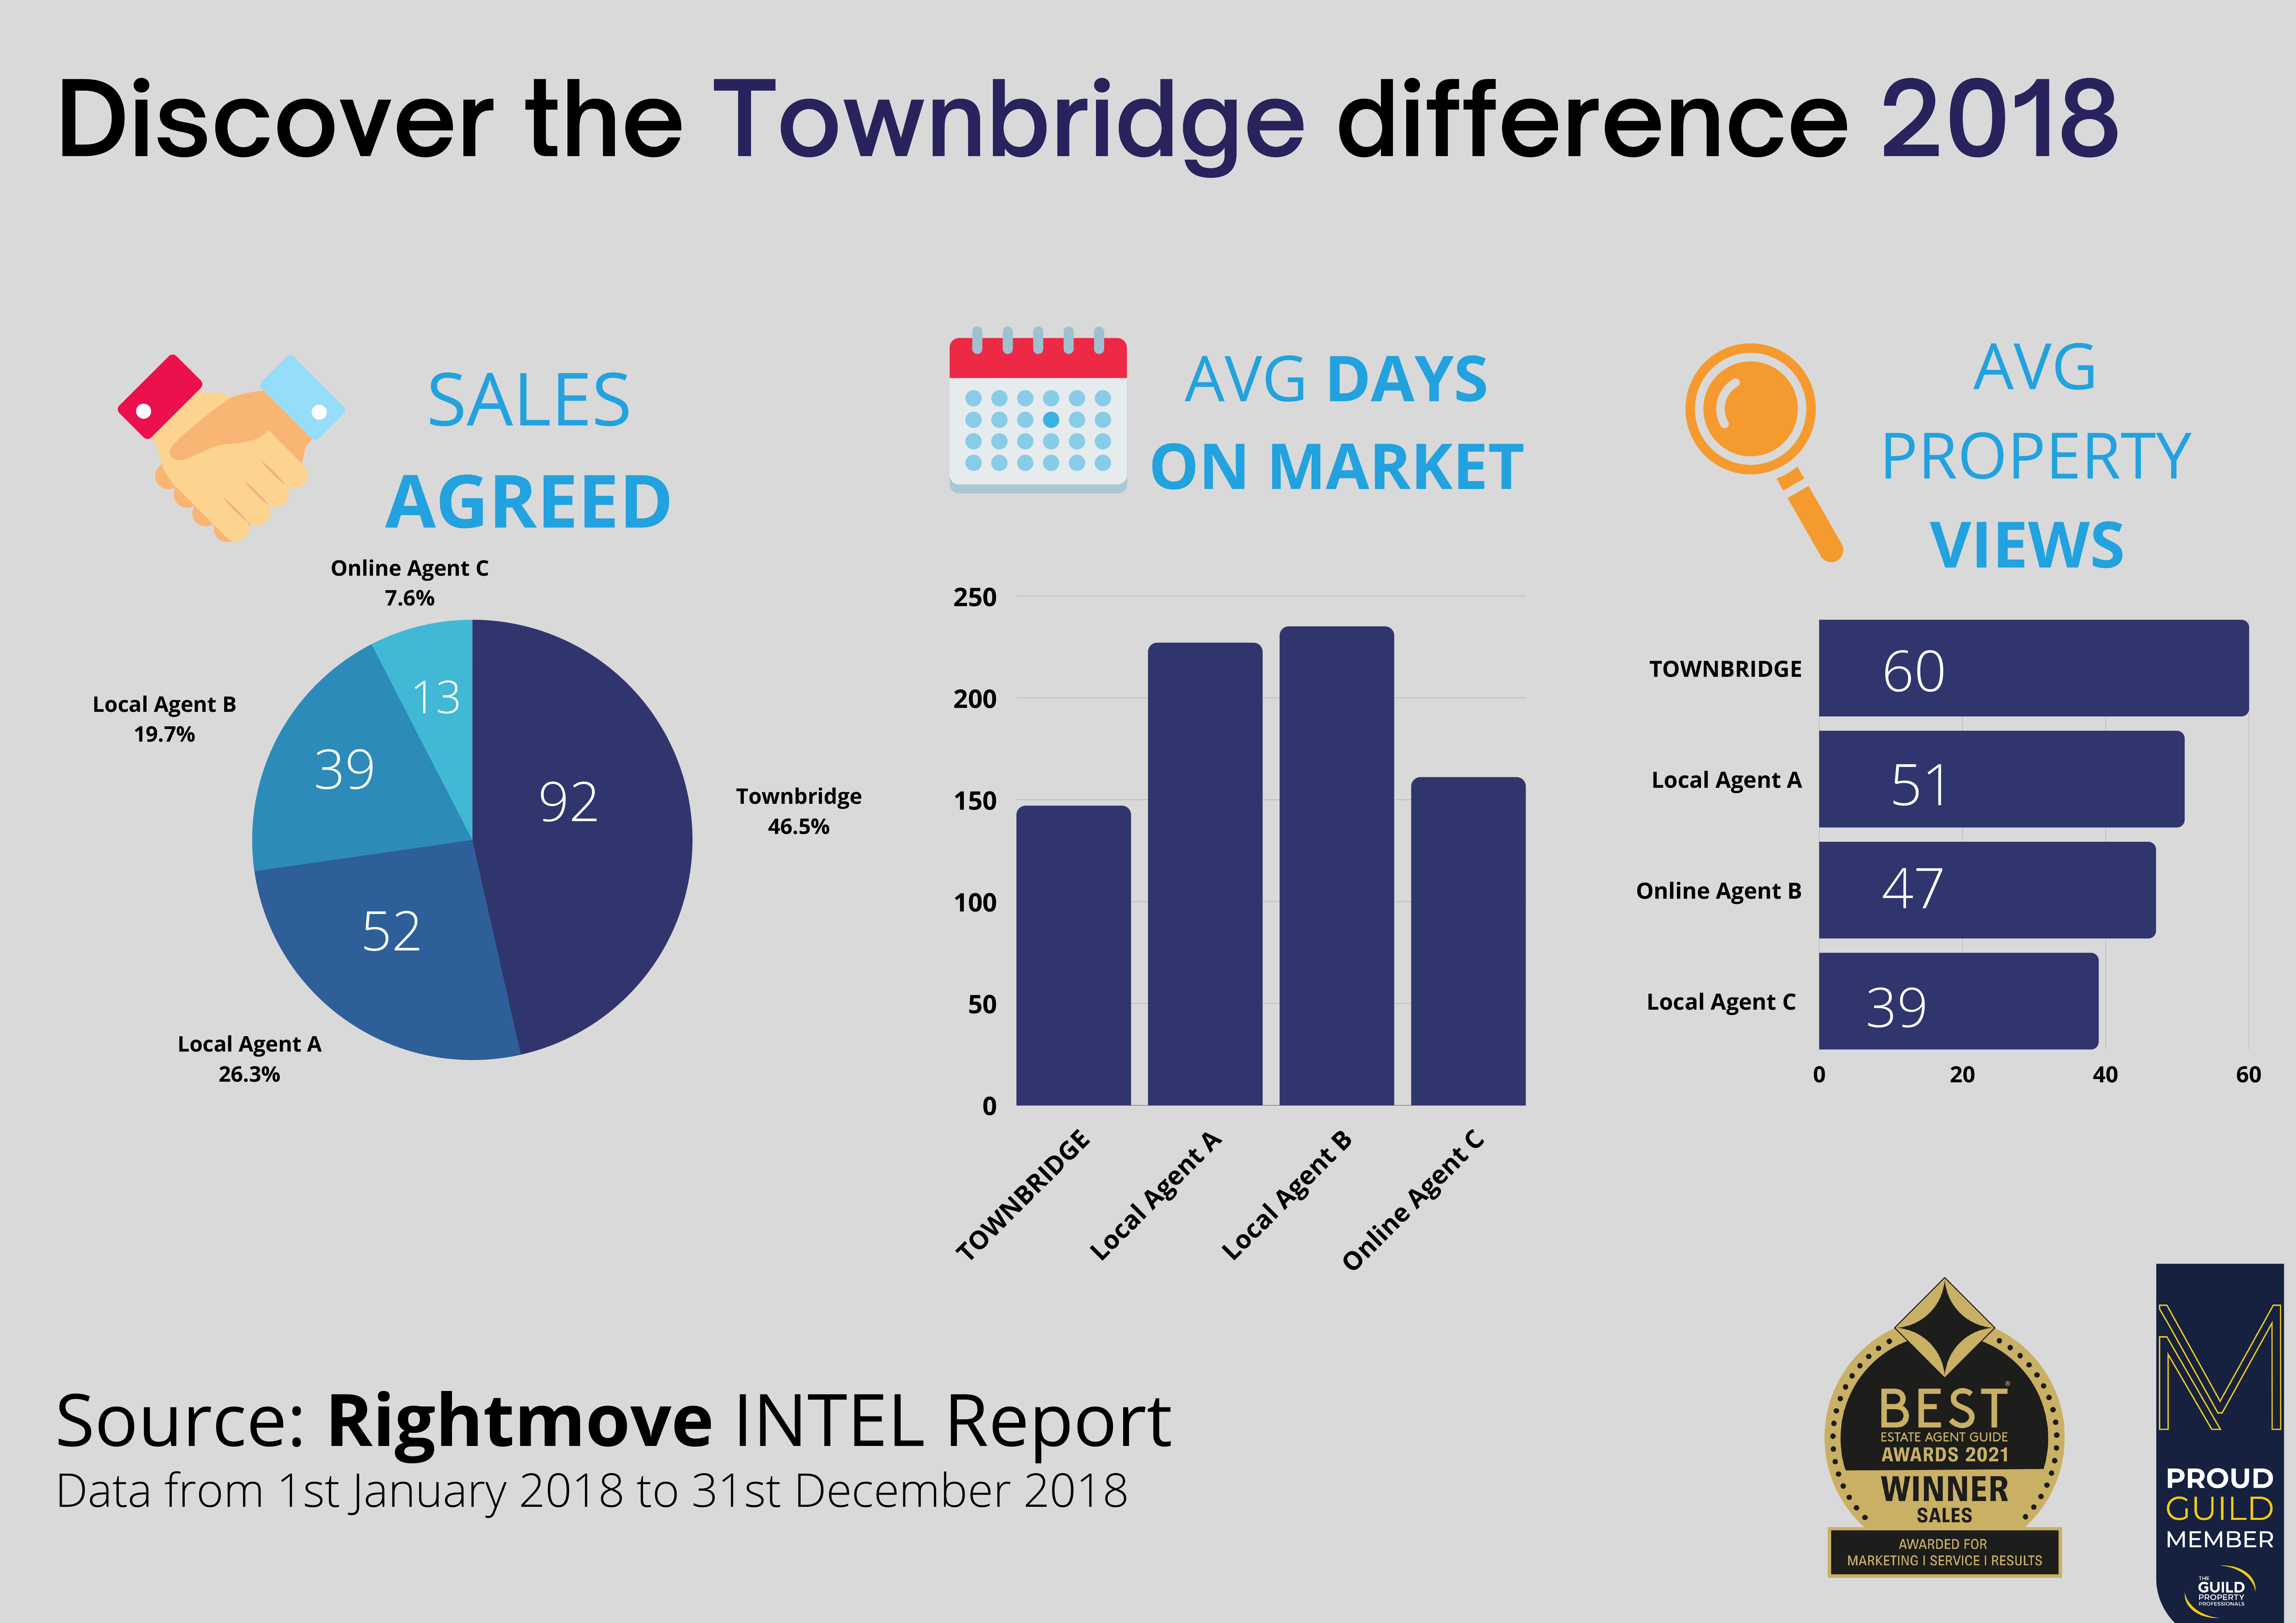 townbridge_2018_-_difference